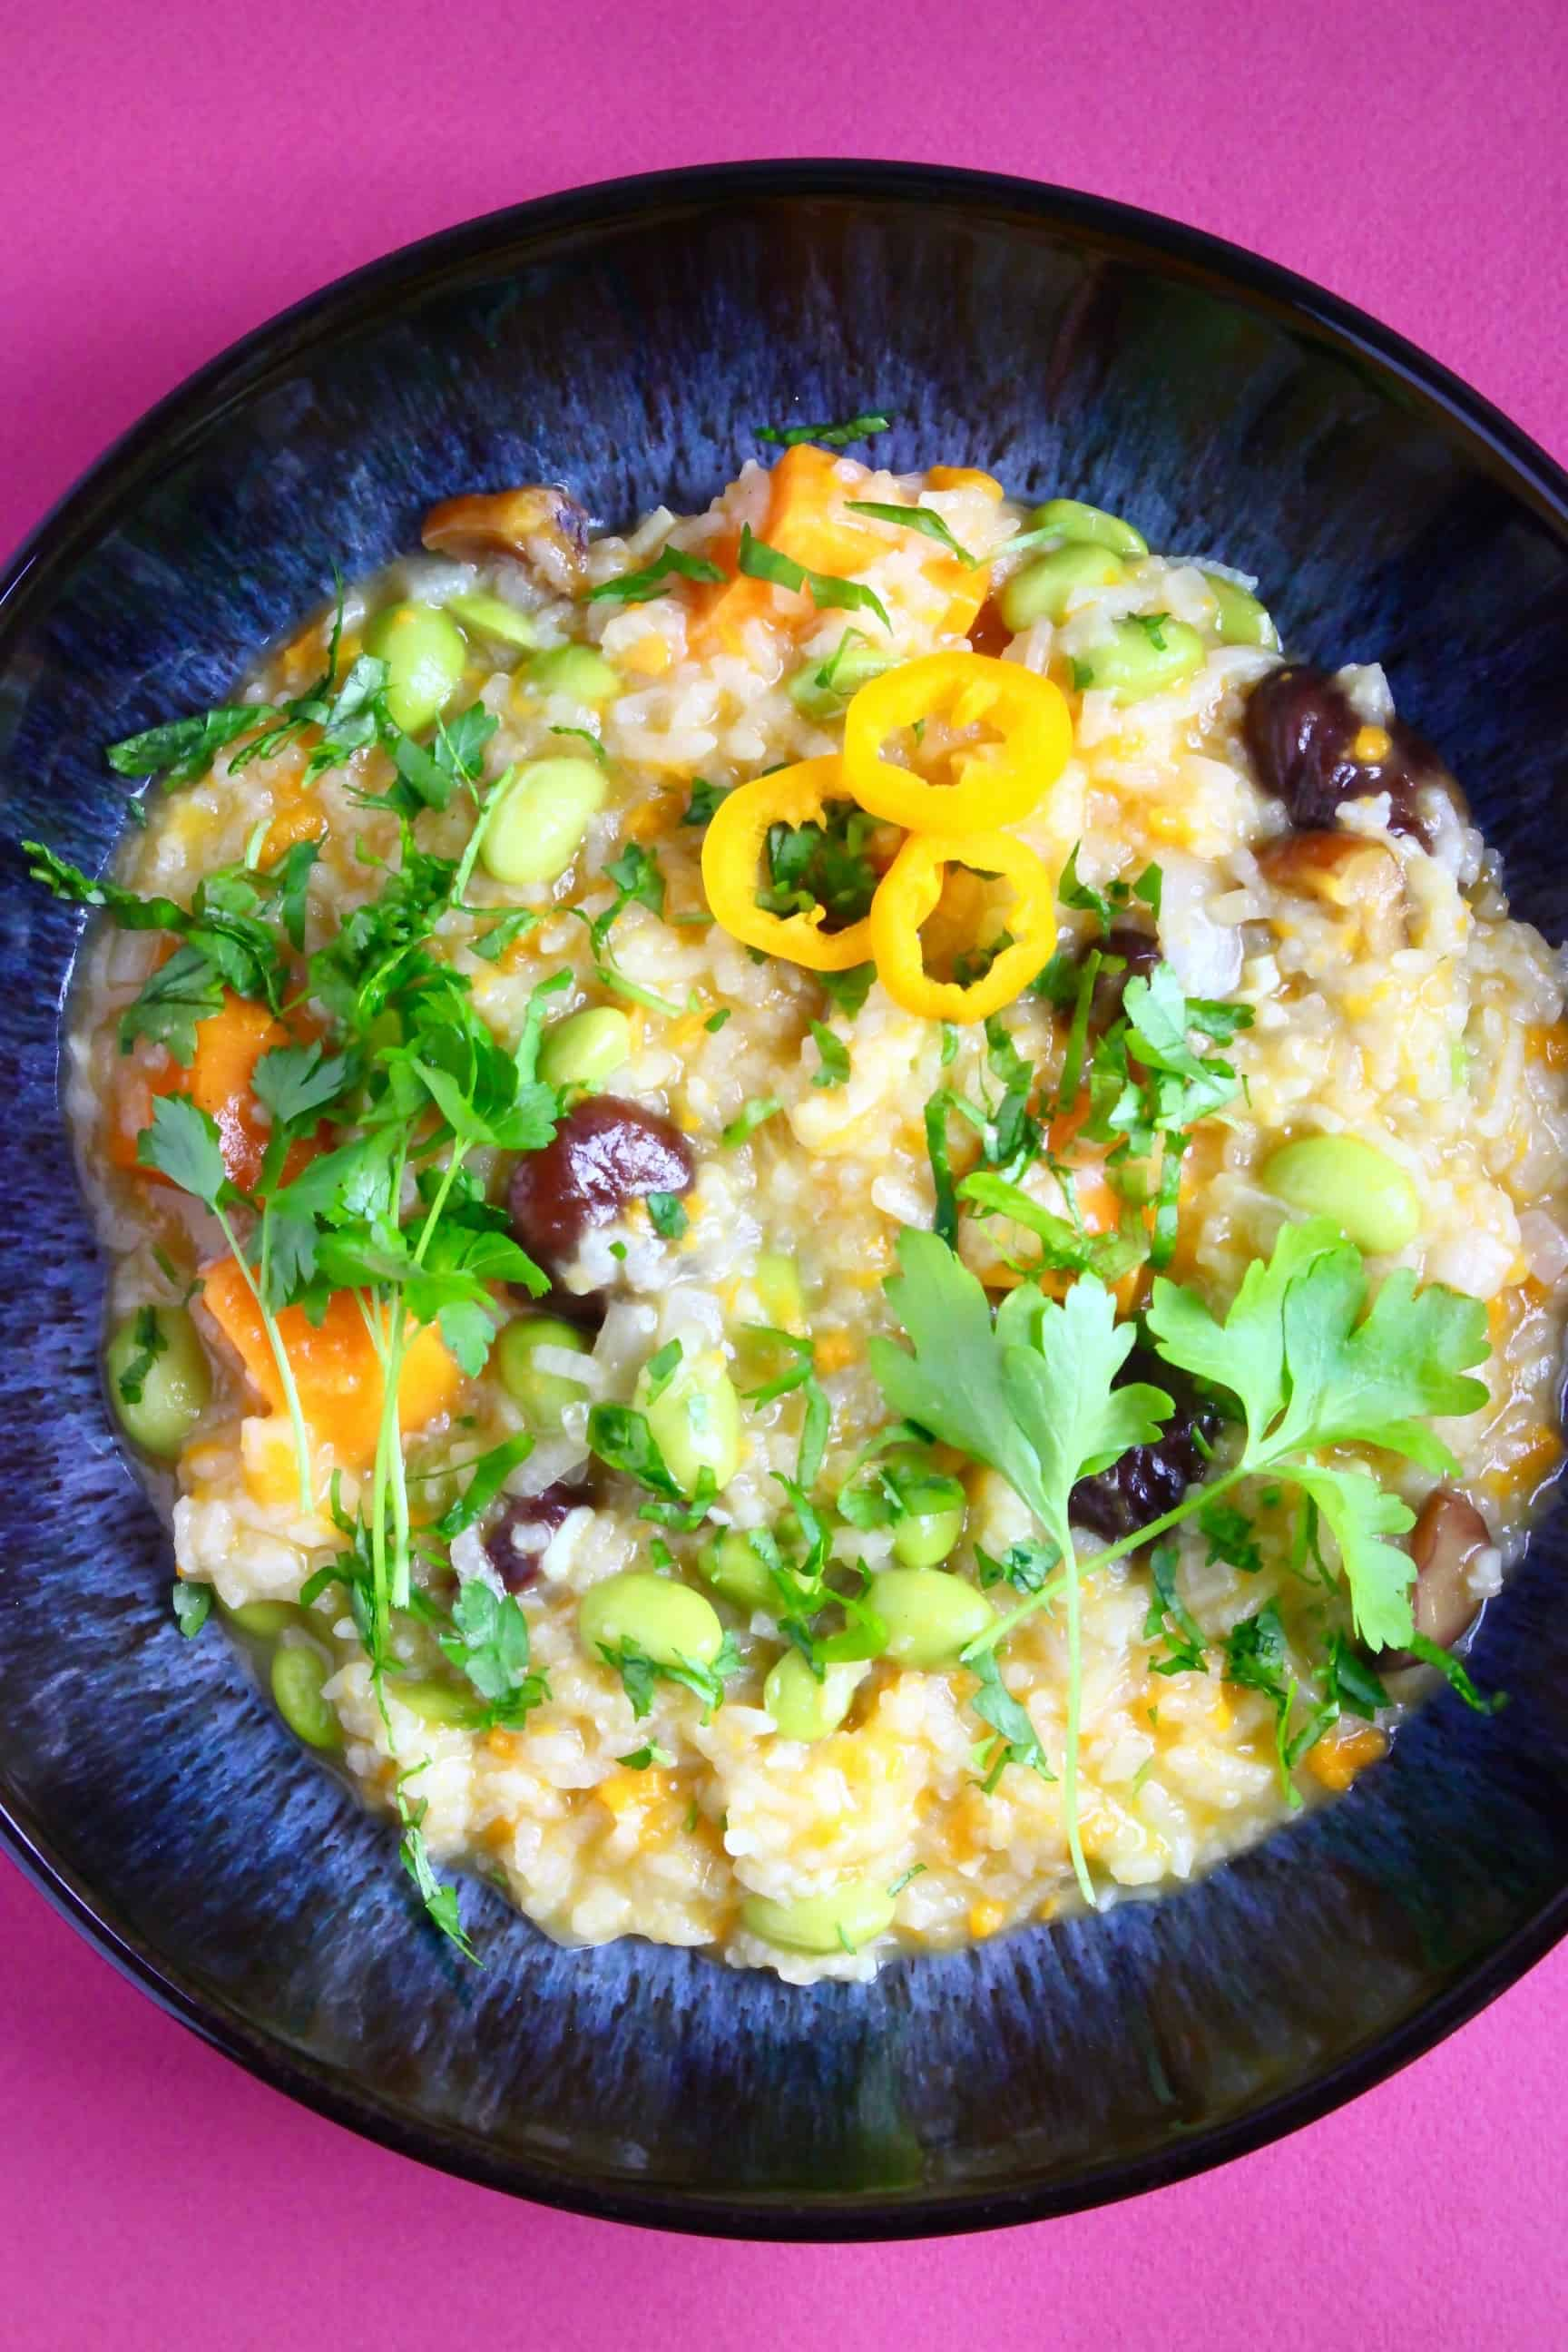 Vegan pumpkin risotto with brown chestnuts decorated with green herbs in a dark blue bowl against a bright pink background